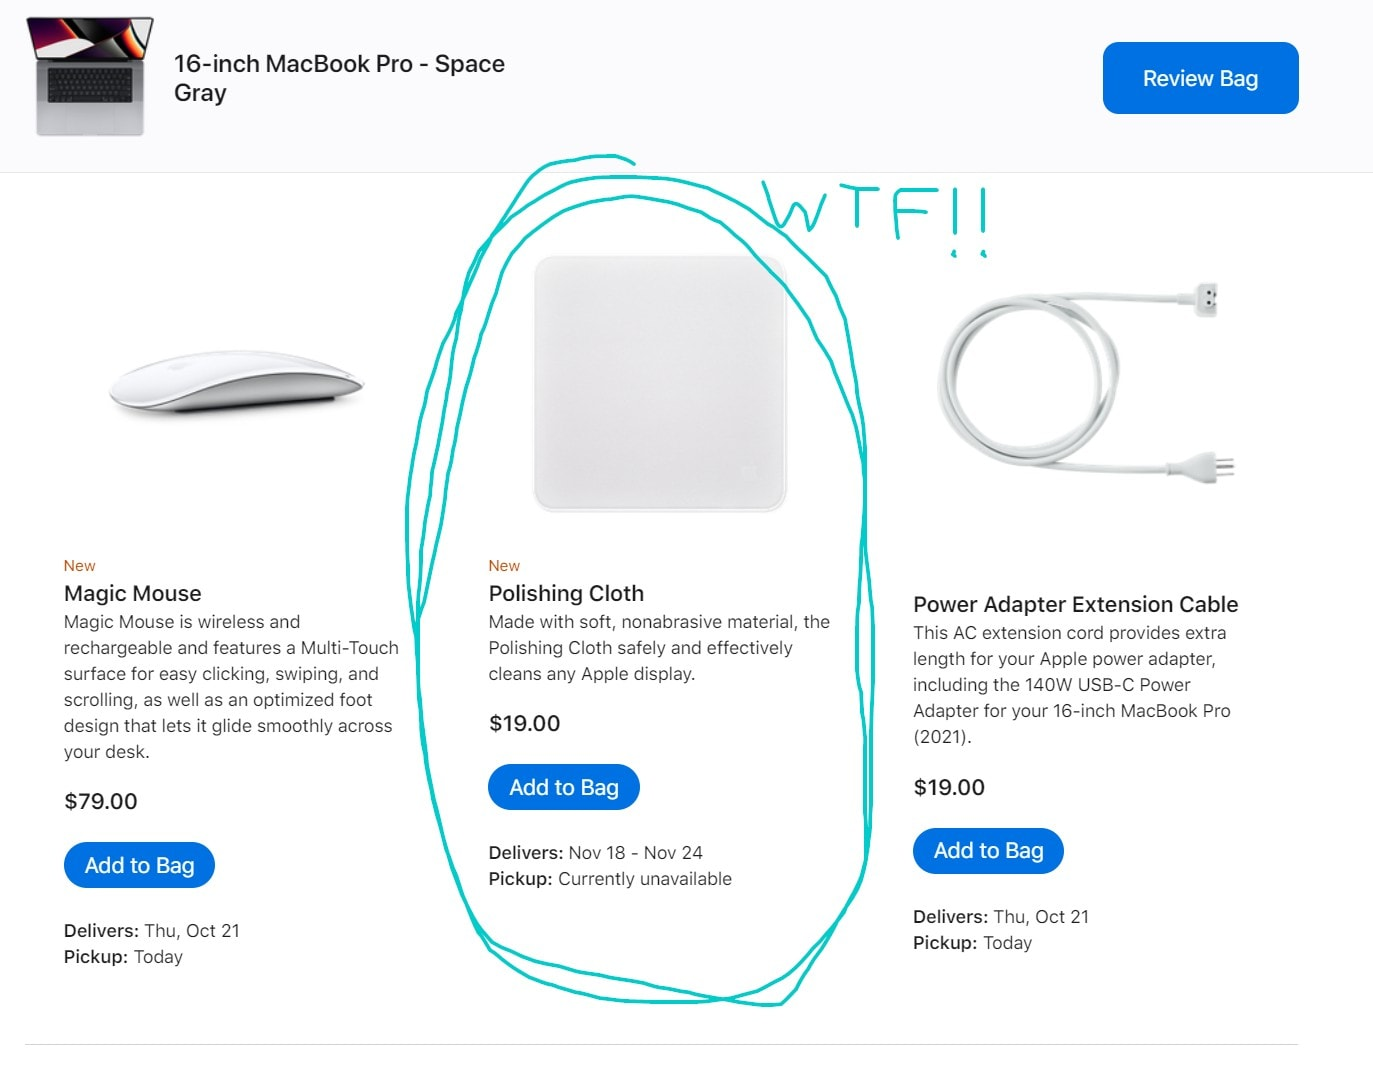 Apple Polishing Cloth sherlocks CultCloth. I did not expect to see this new product in Apple's online store.